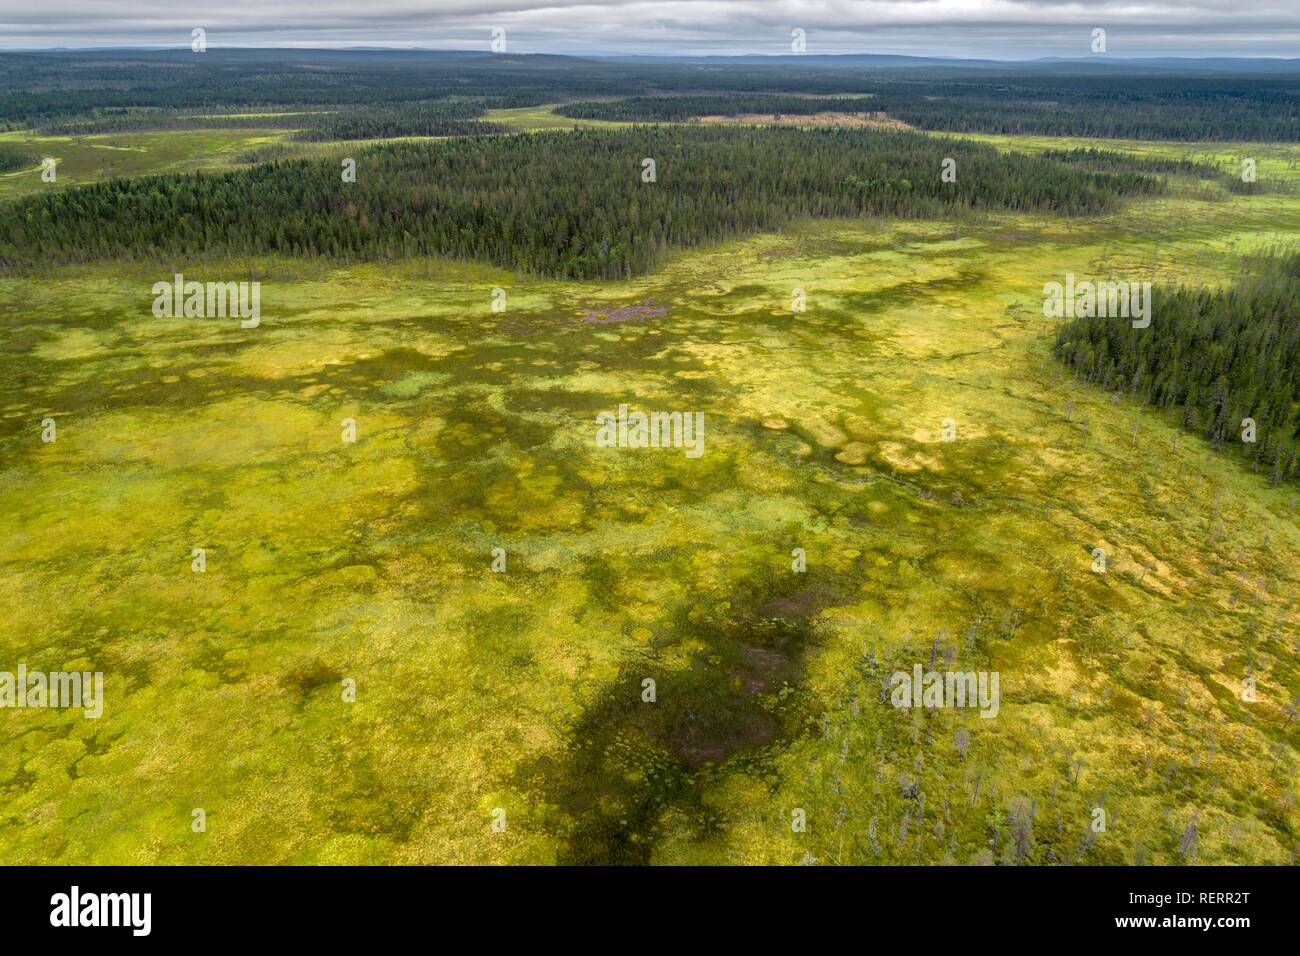 Drone view, aerial photo, boreal, arctic forest with conifers in wetland, moor, Savukoski, Lapland, Finland - Stock Image